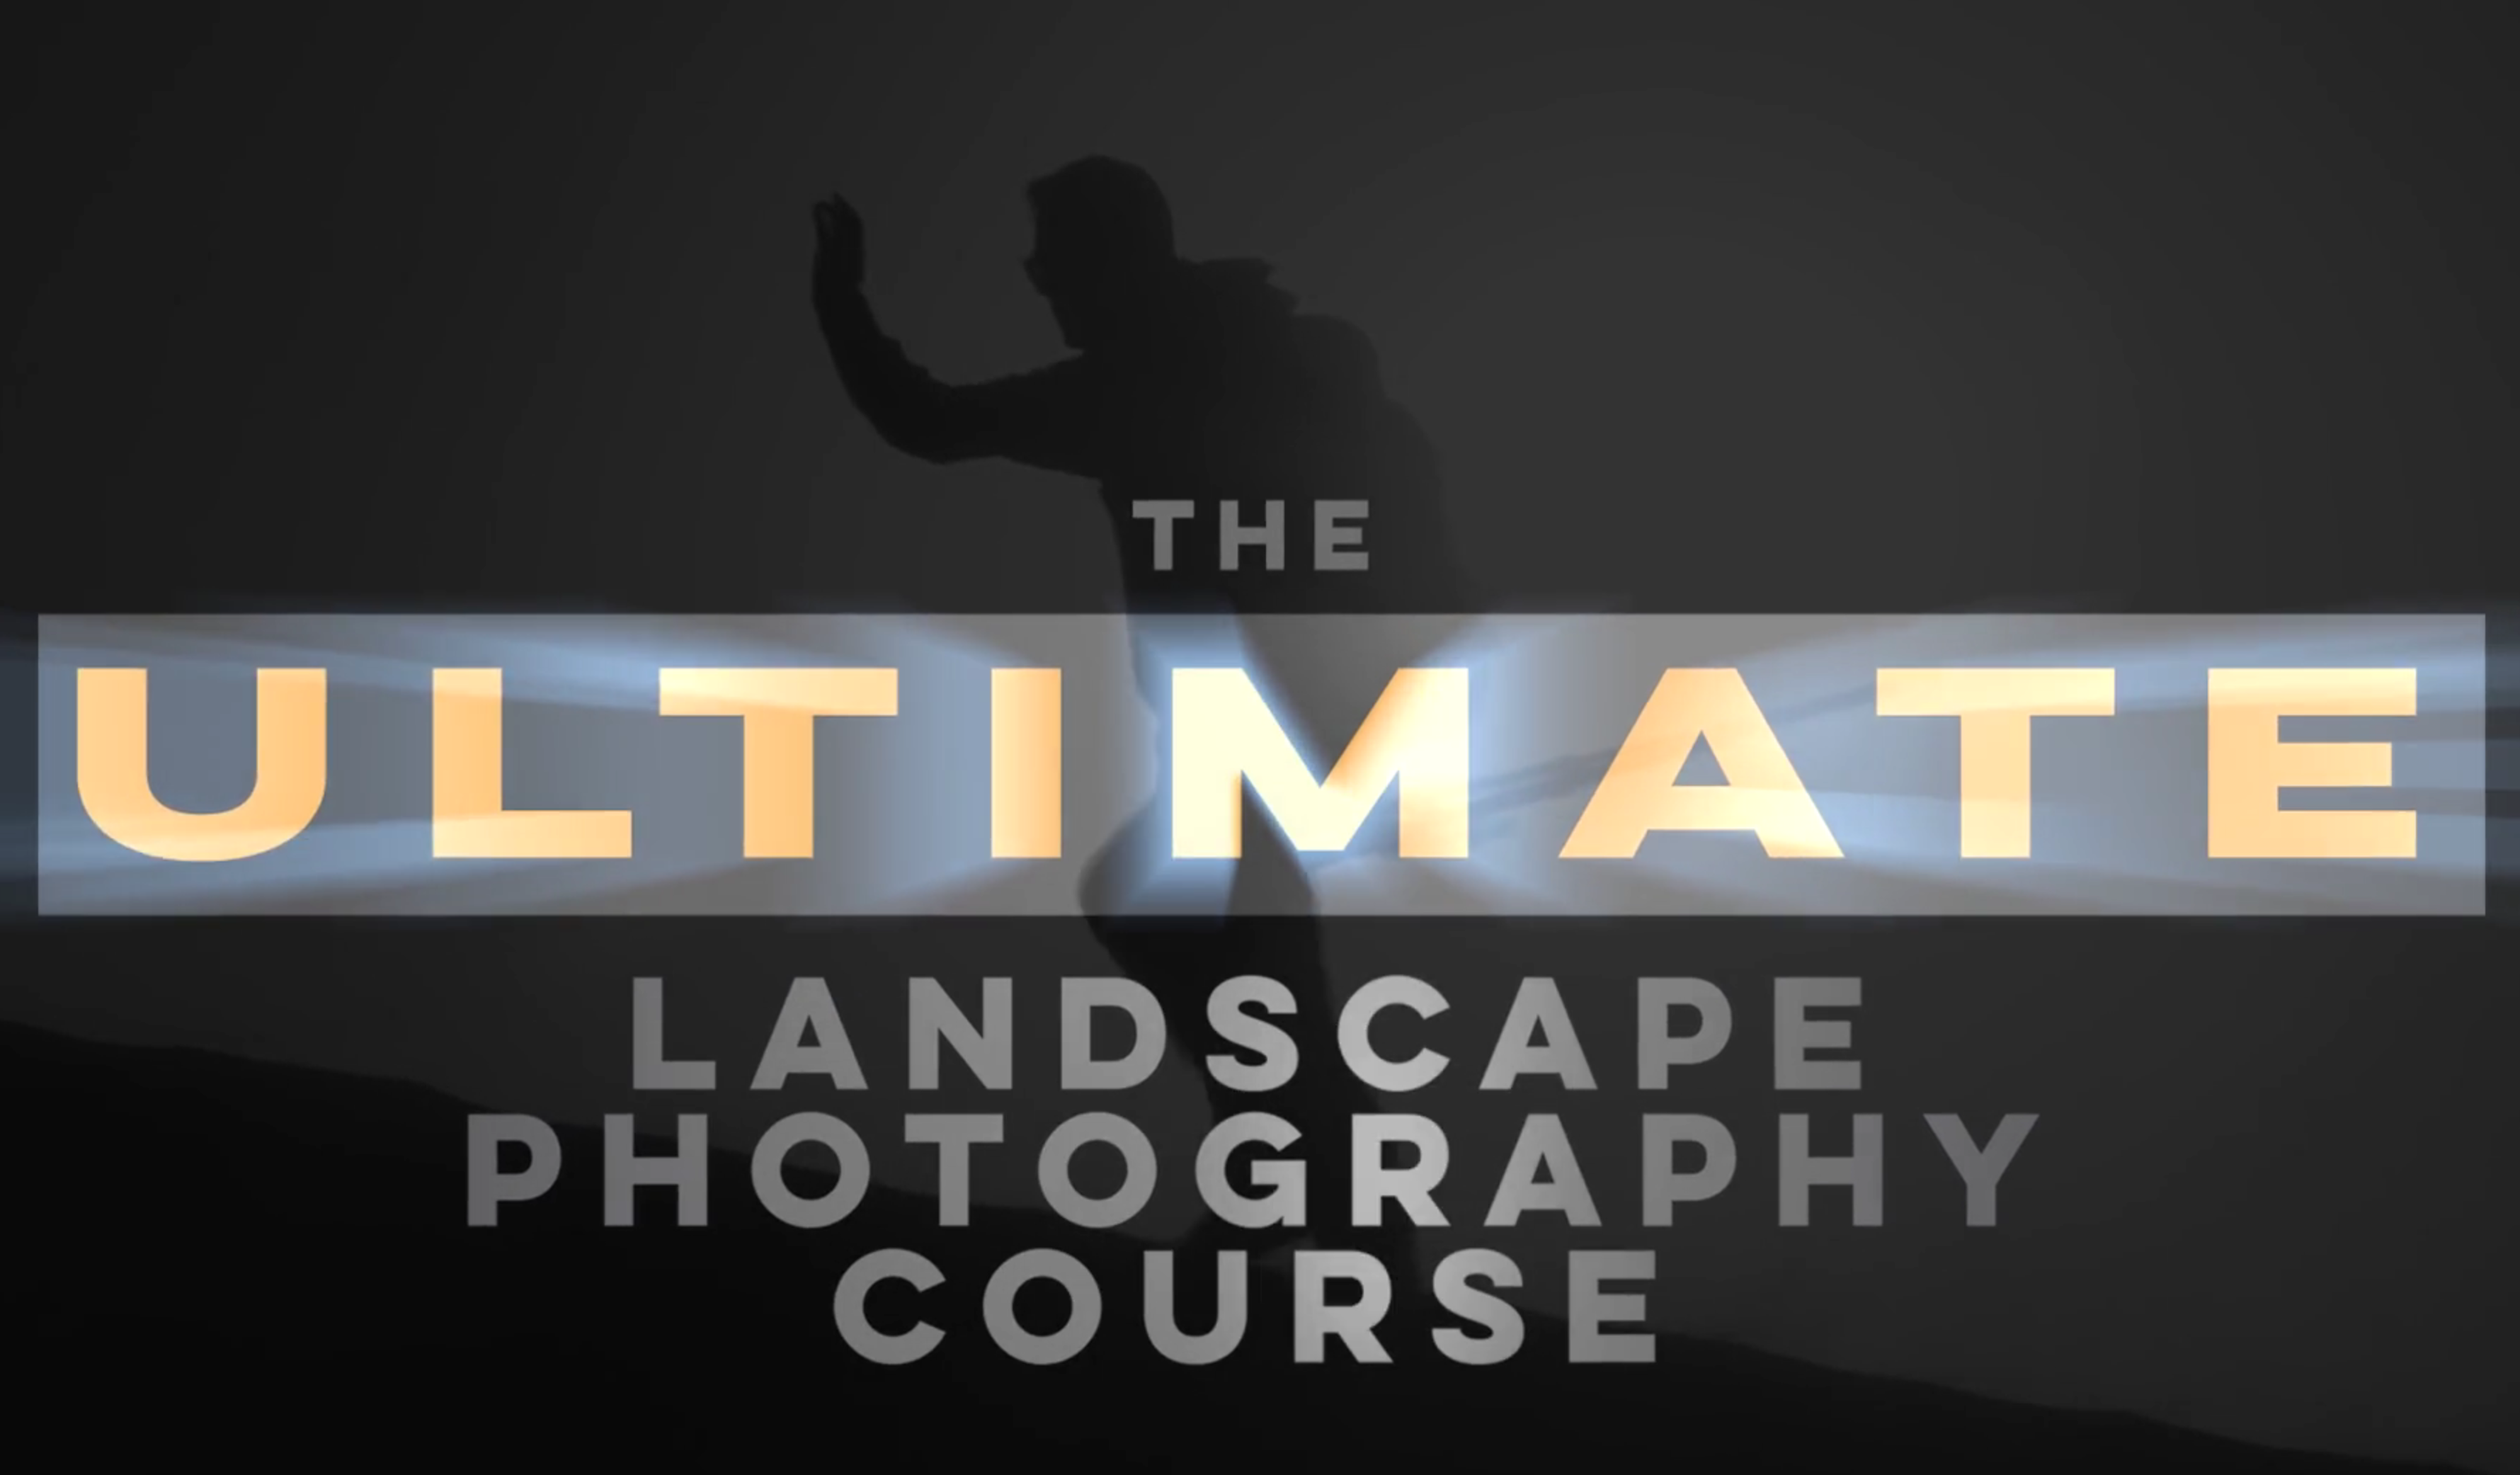 A Great Guide For Everyone: Ian Plant's Landscape Photography Course